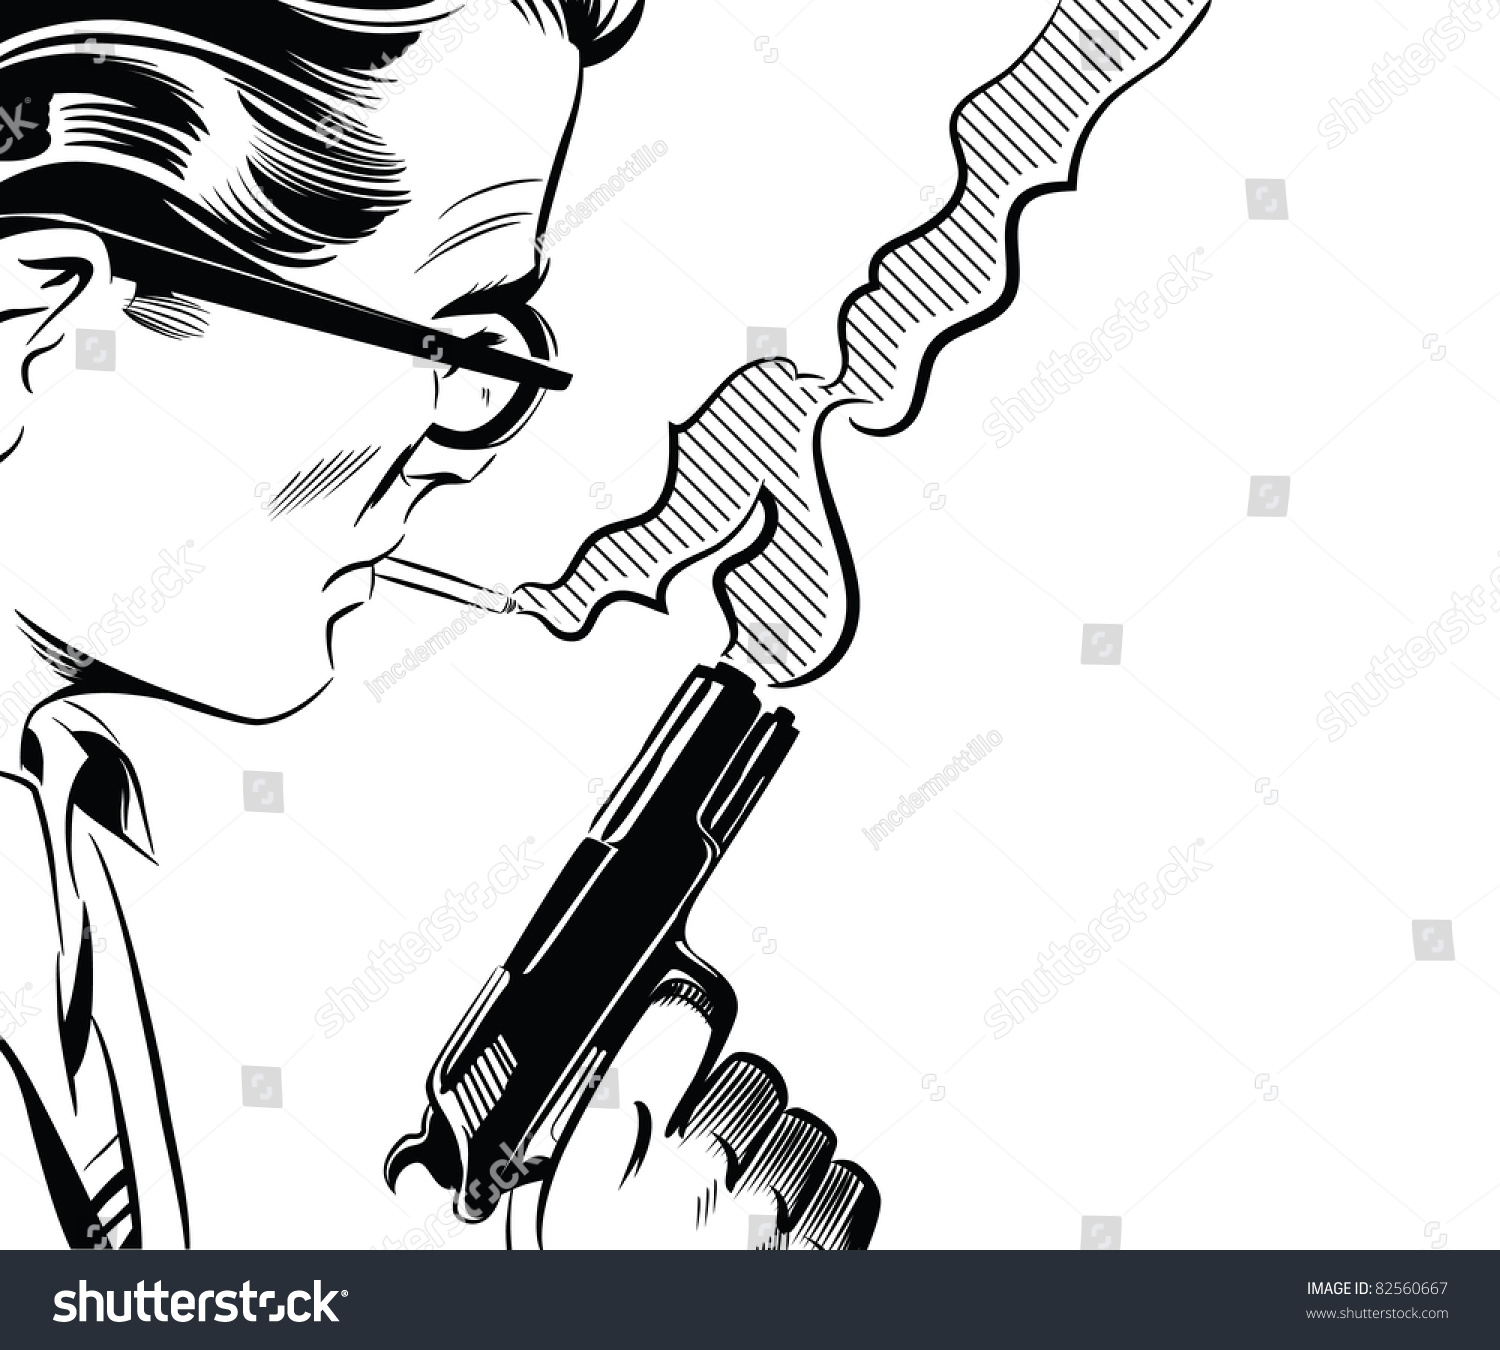 It is an image of Epic Man Holding Gun Drawing